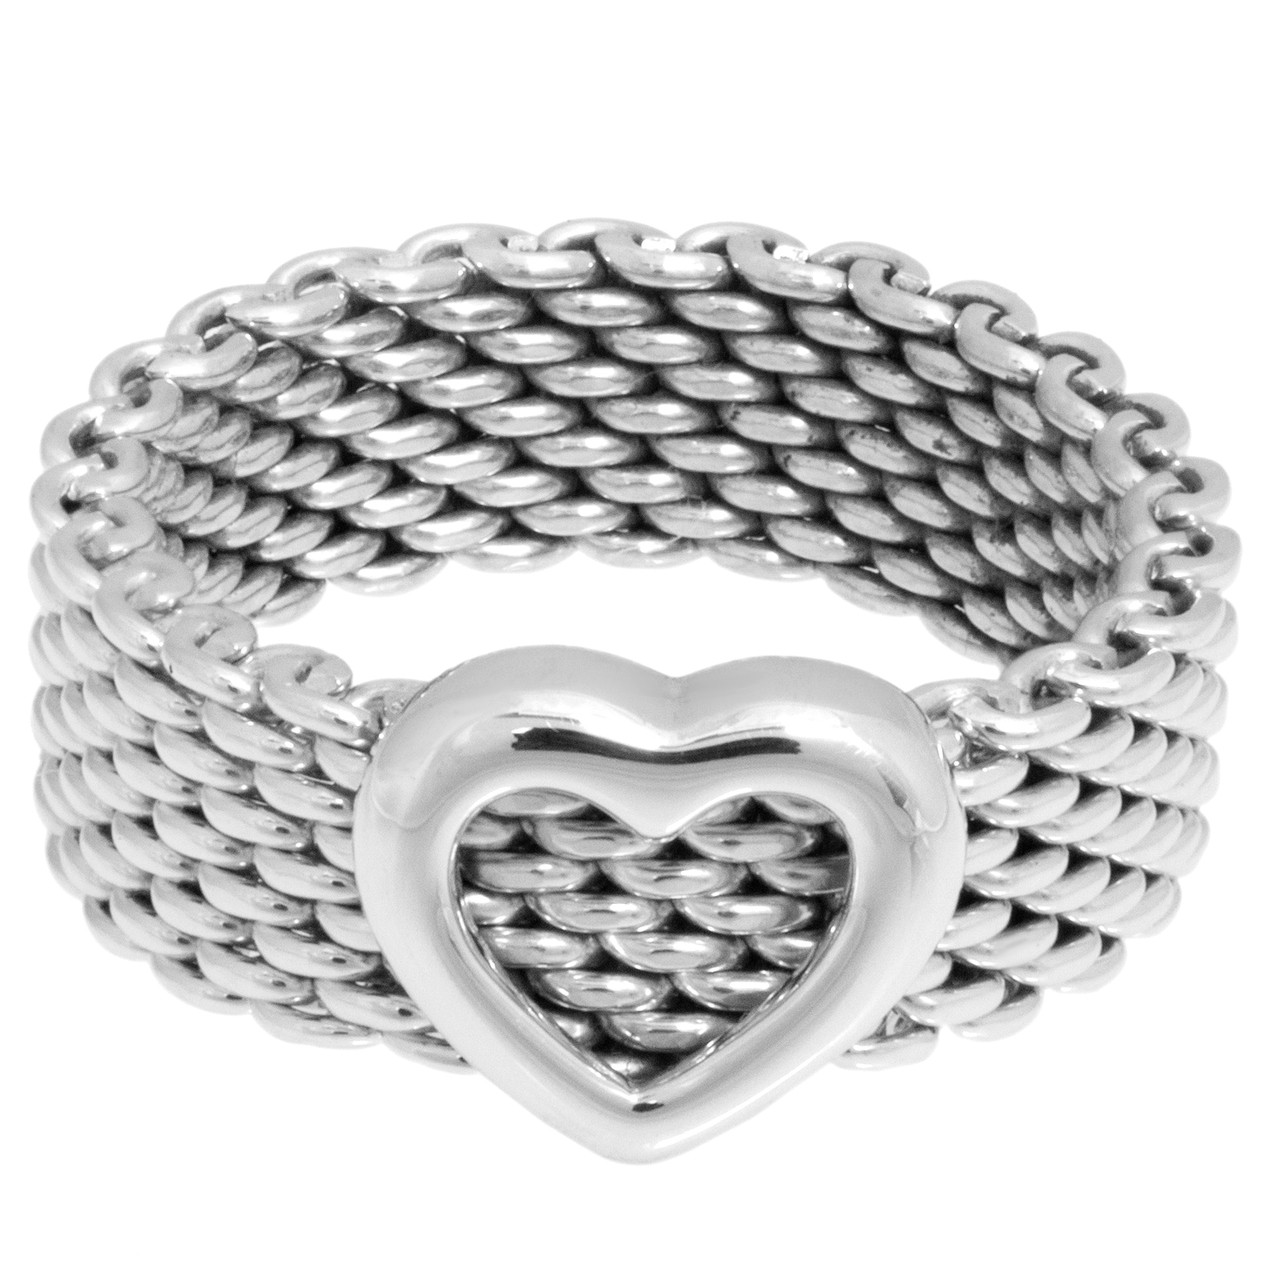 af0f99bf8 Tiffany & Co. Sterling Silver Heart Mesh Ring - modaselle